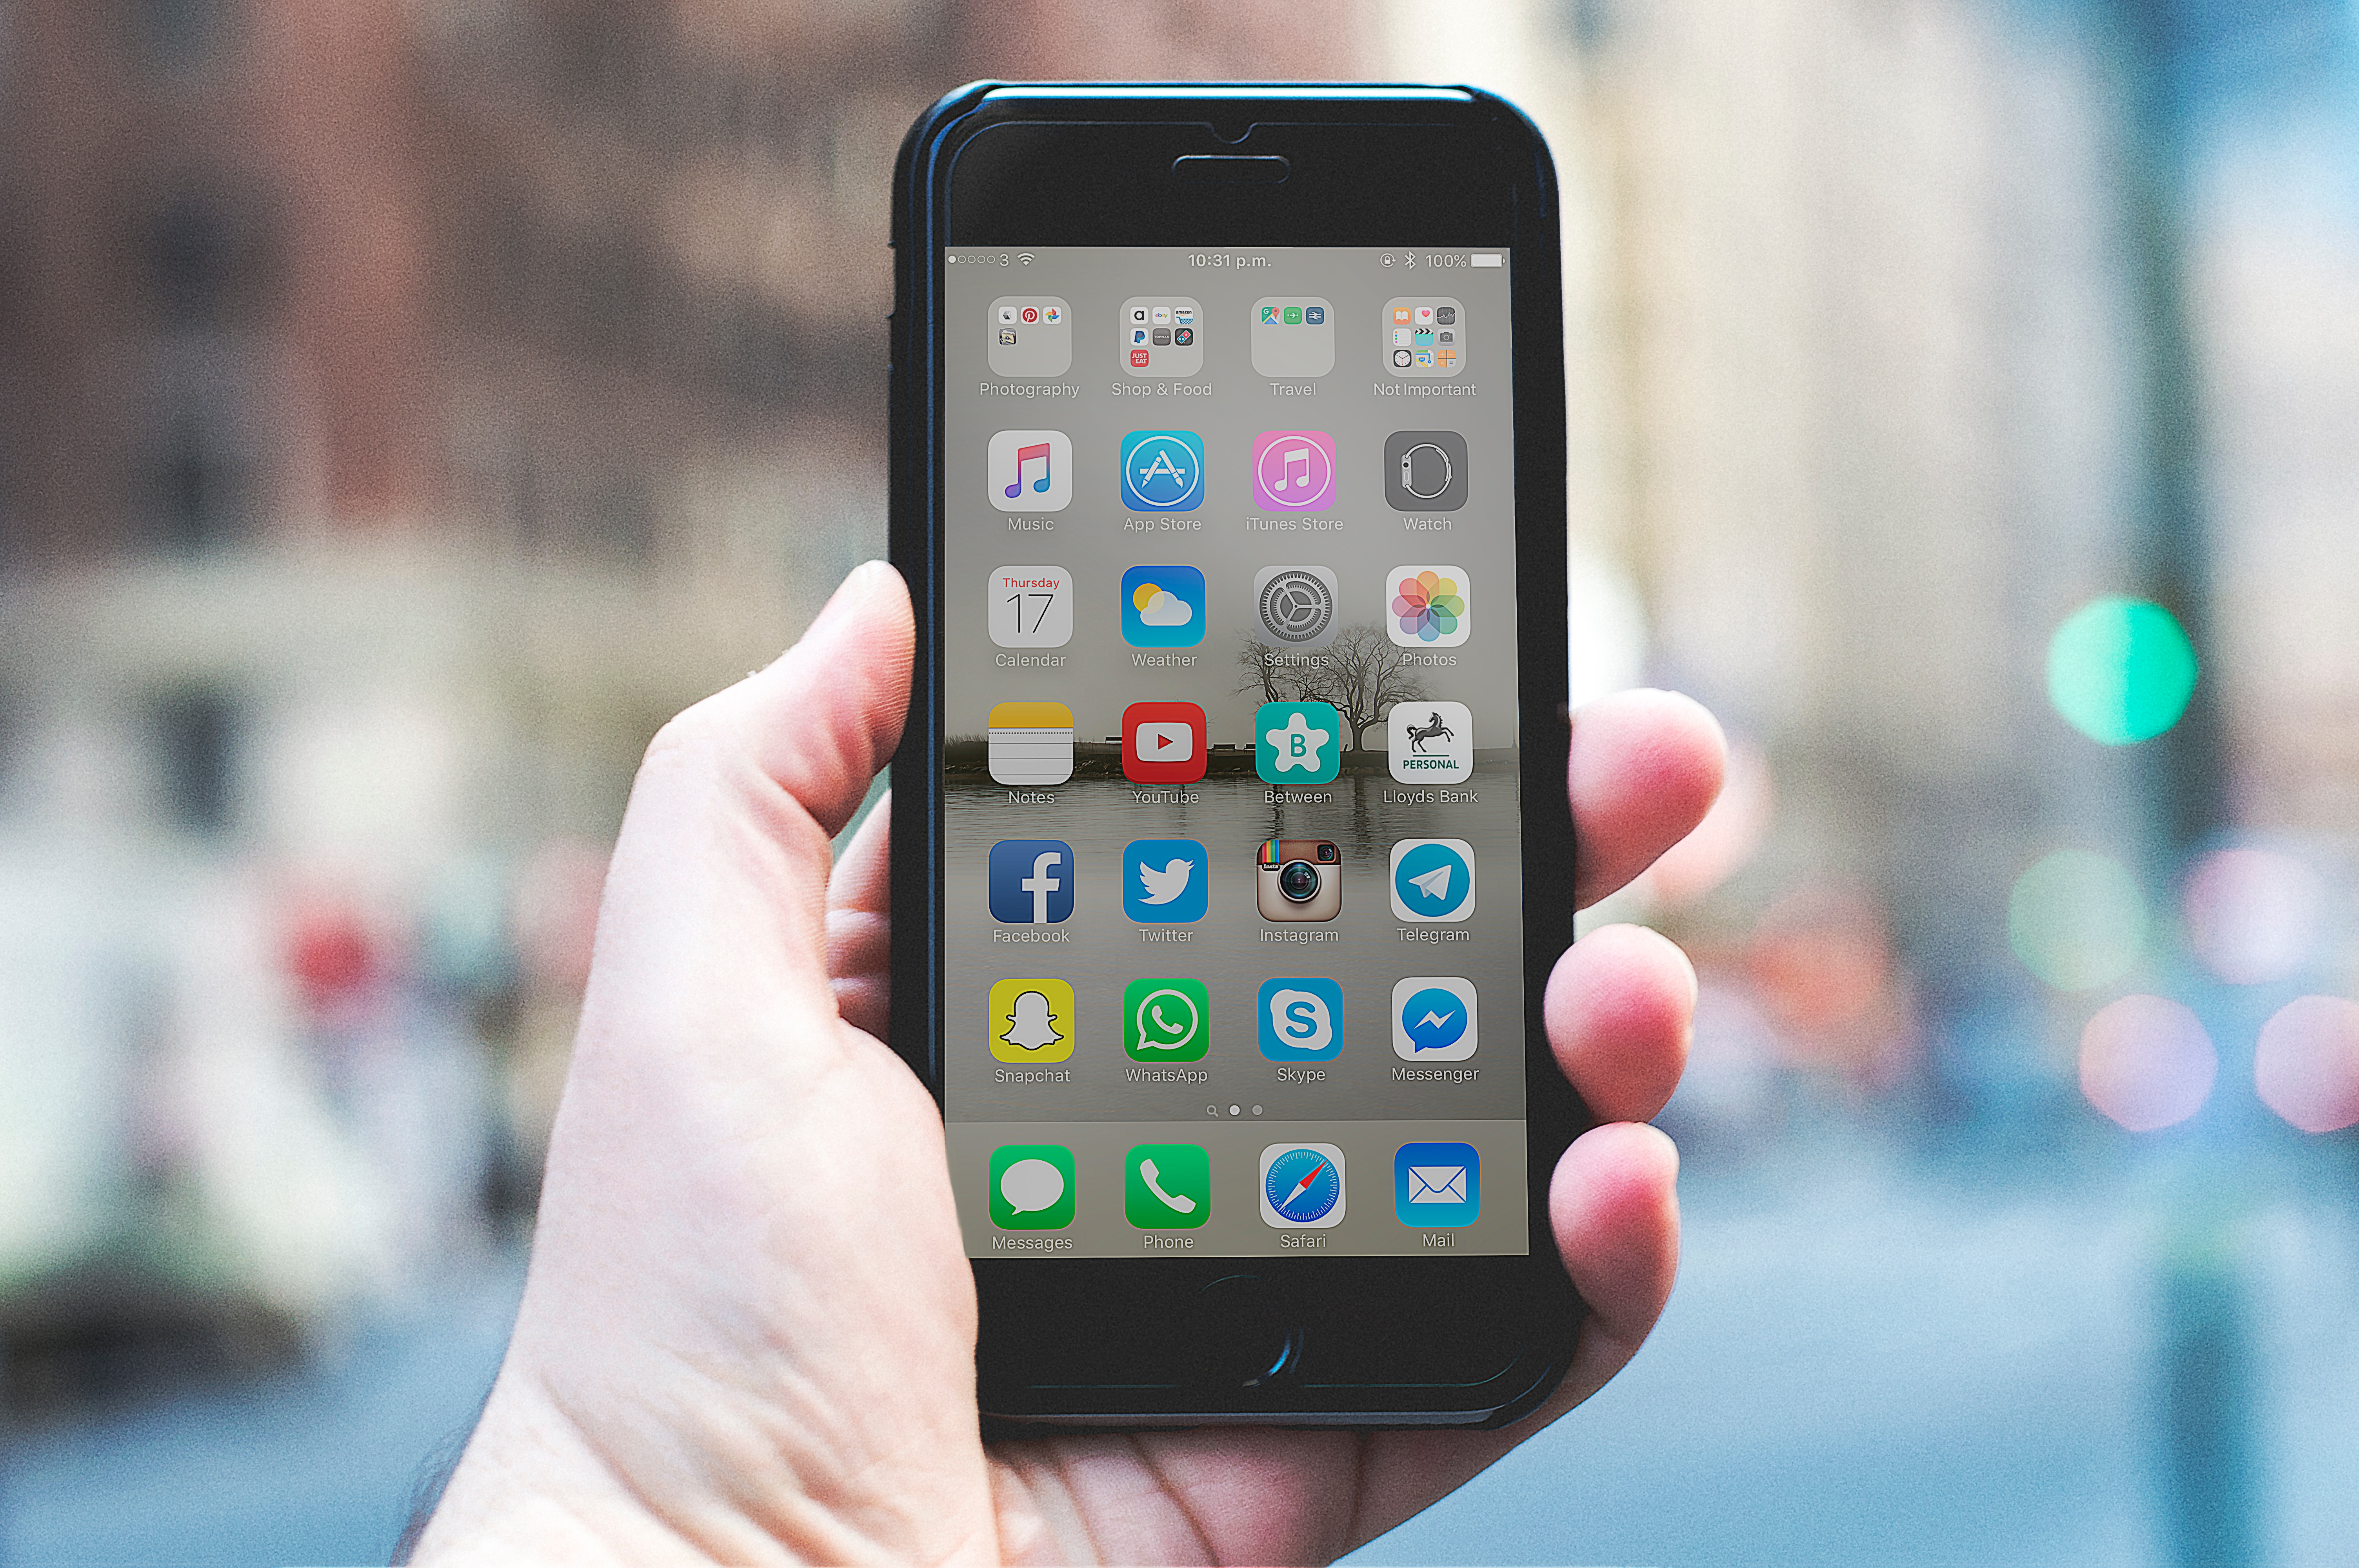 Cool apps for teens